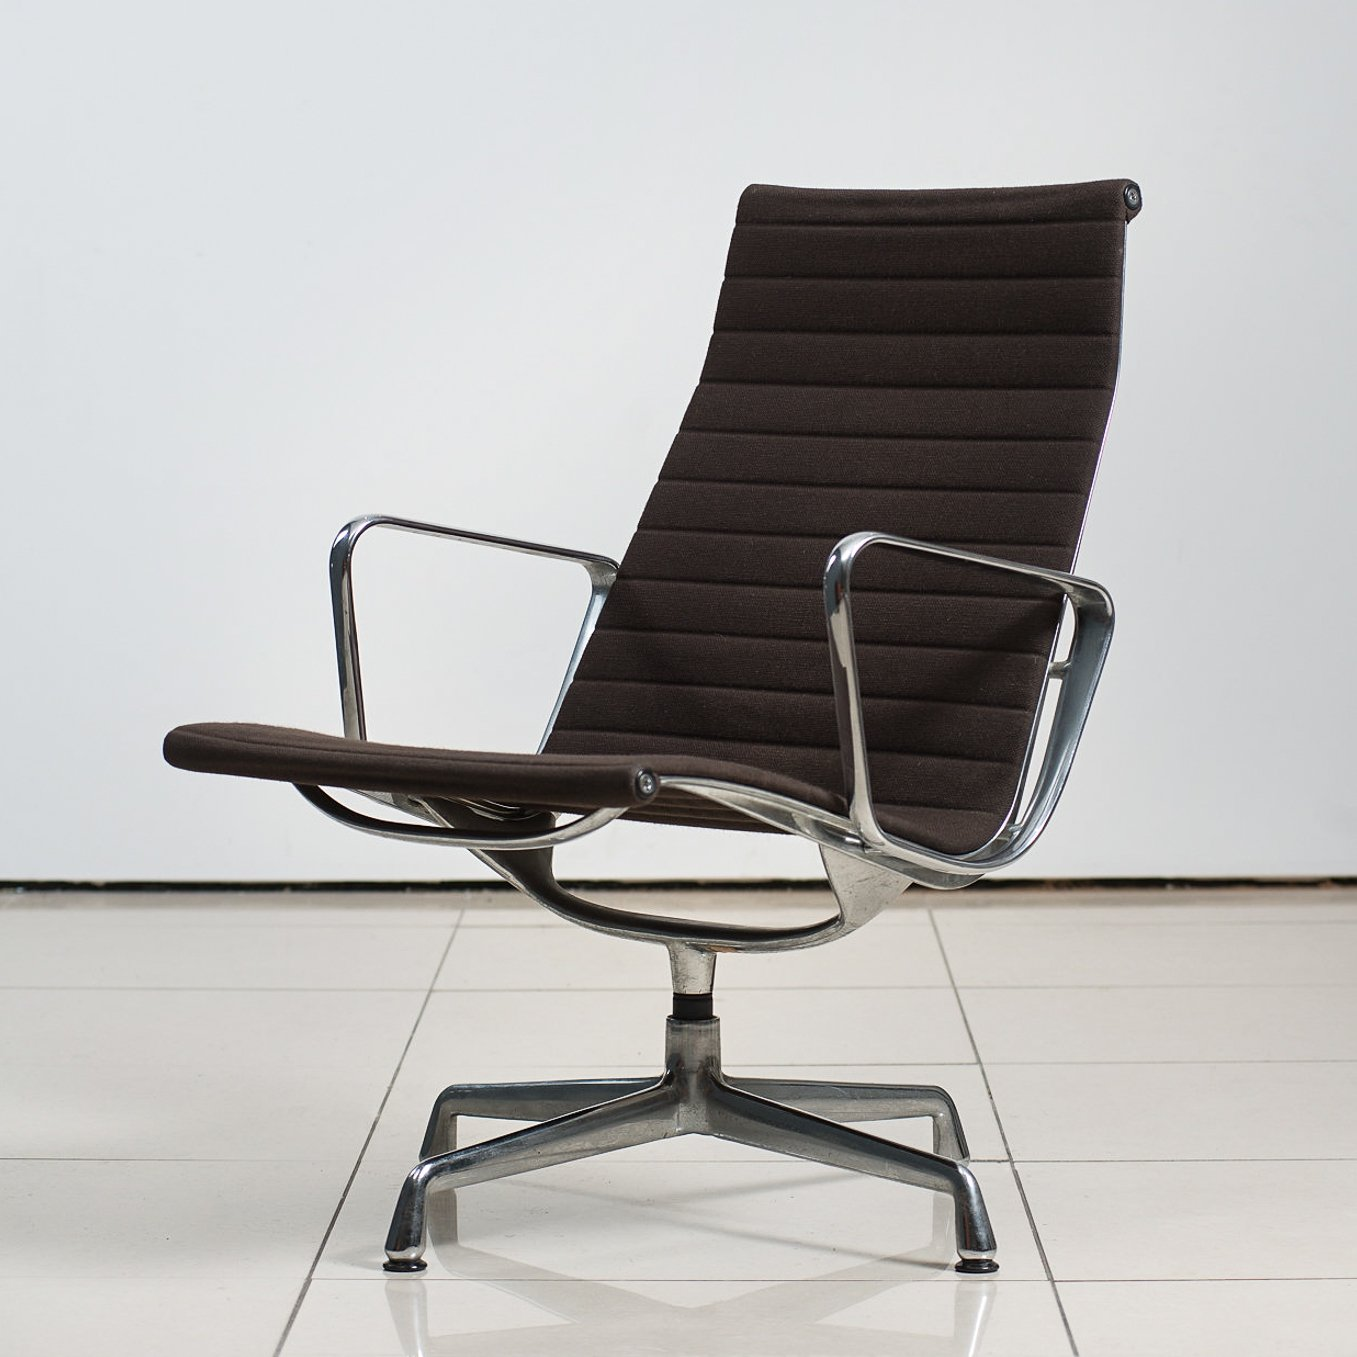 Tremendous Eames Vitra Model Ea 116 Swivel Chair Gamerscity Chair Design For Home Gamerscityorg